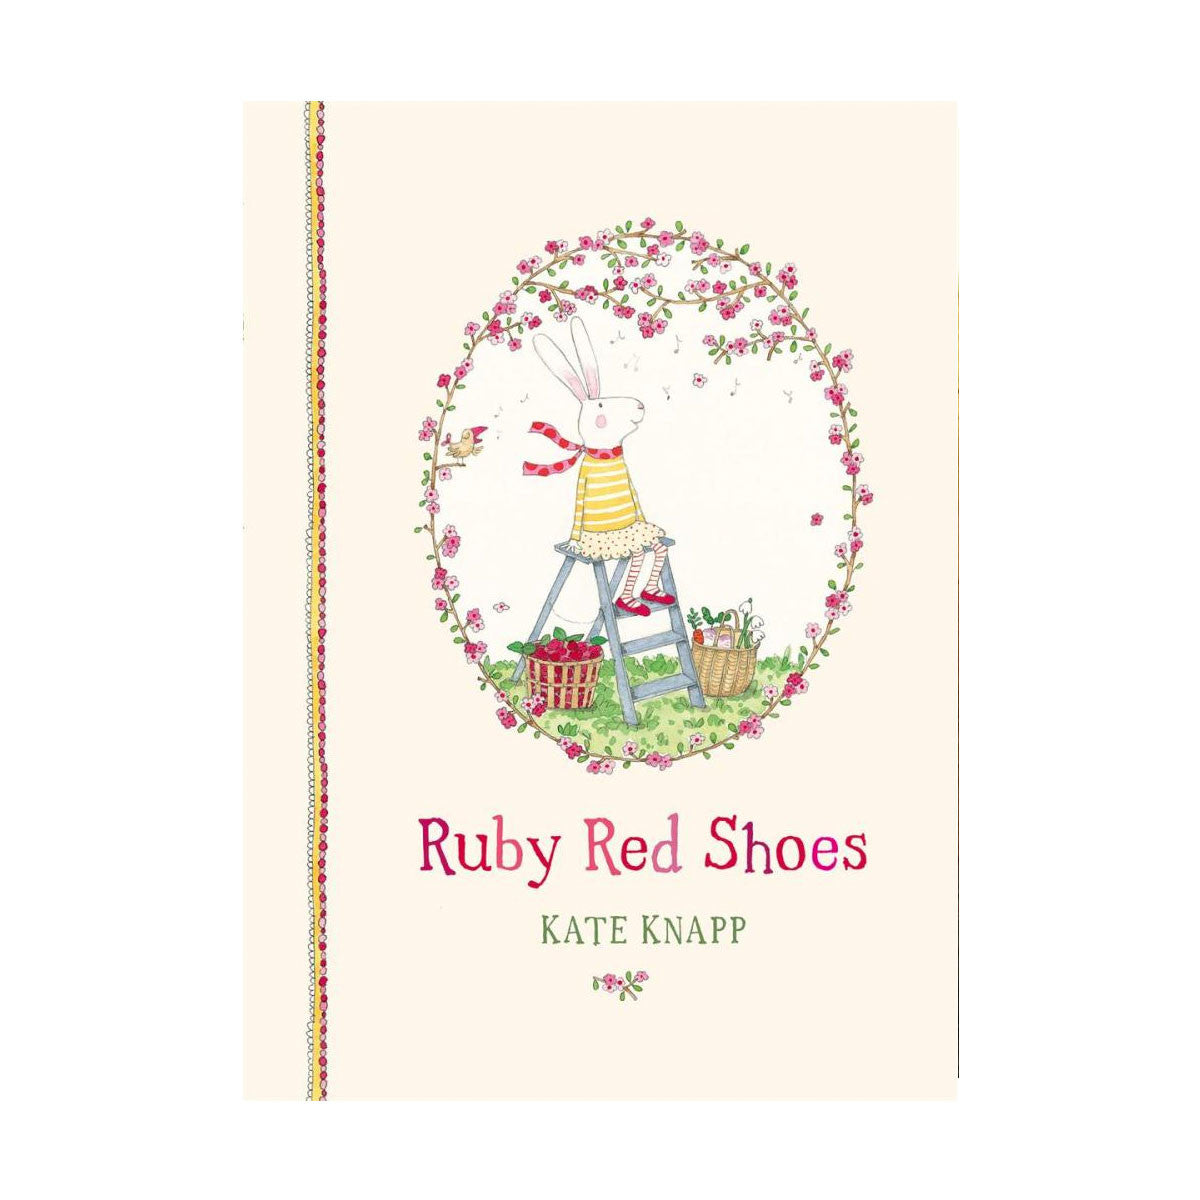 Ruby Red Shoes Book Little Earth Nest Books at Little Earth Nest Eco Shop